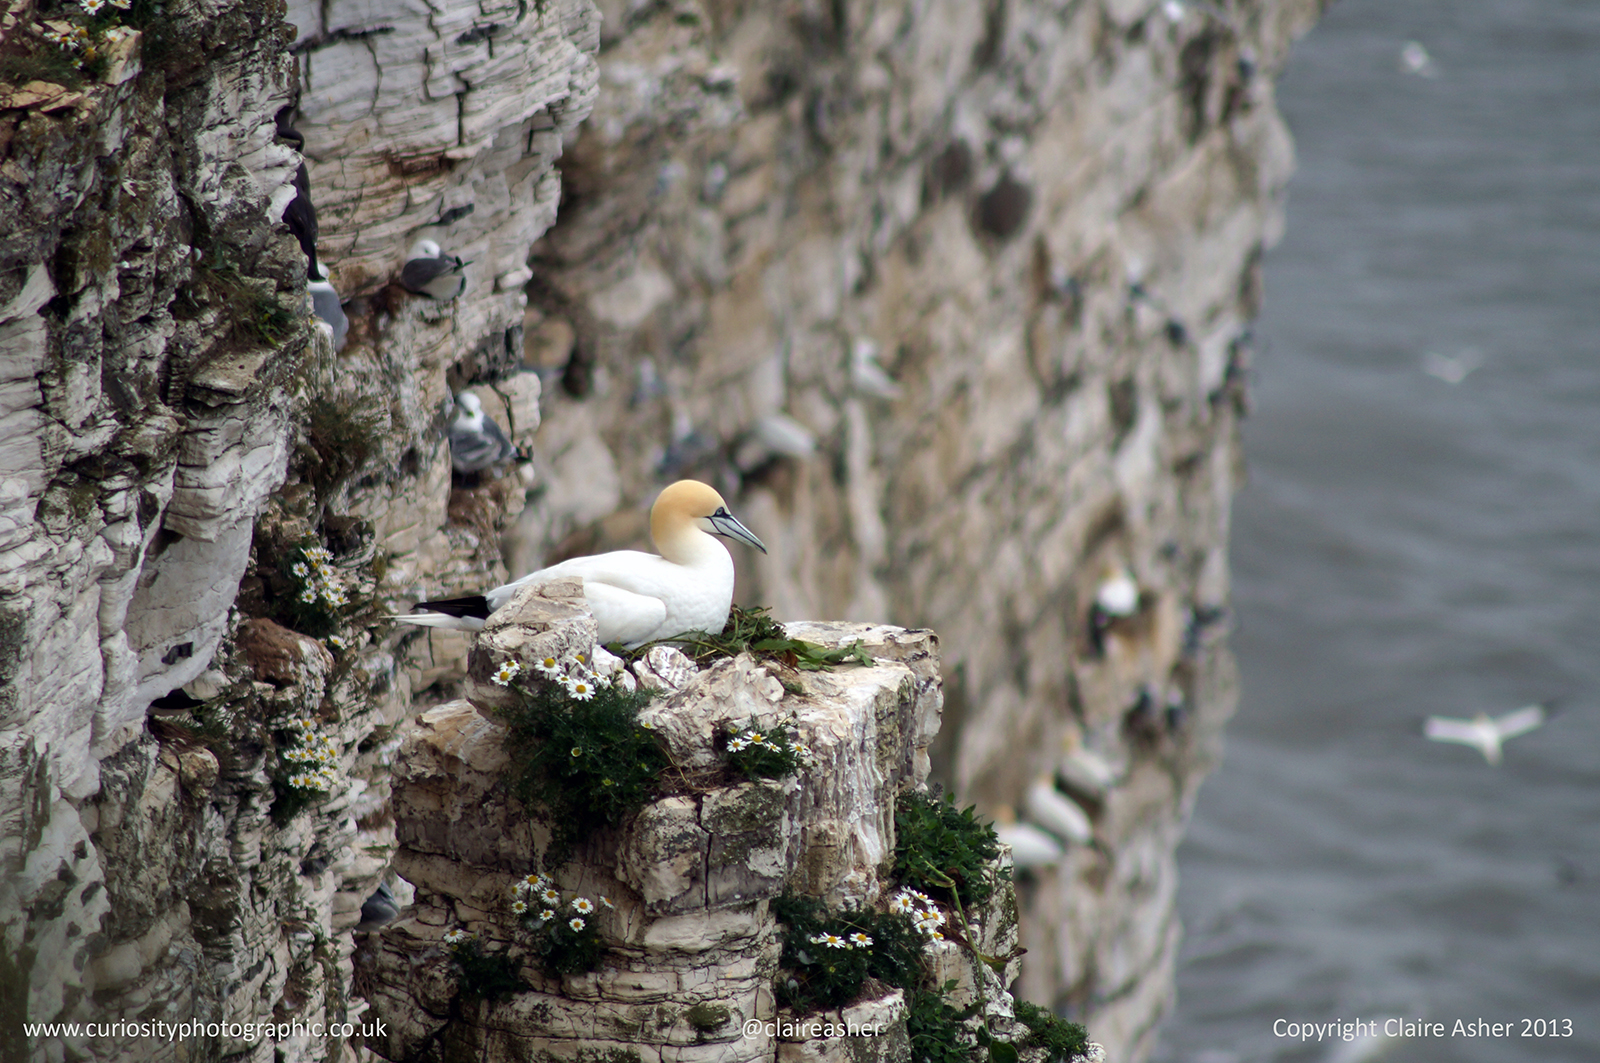 A Gannet tending the nest (Morus bassanus), photographed in Yorkshire, England in 2013.